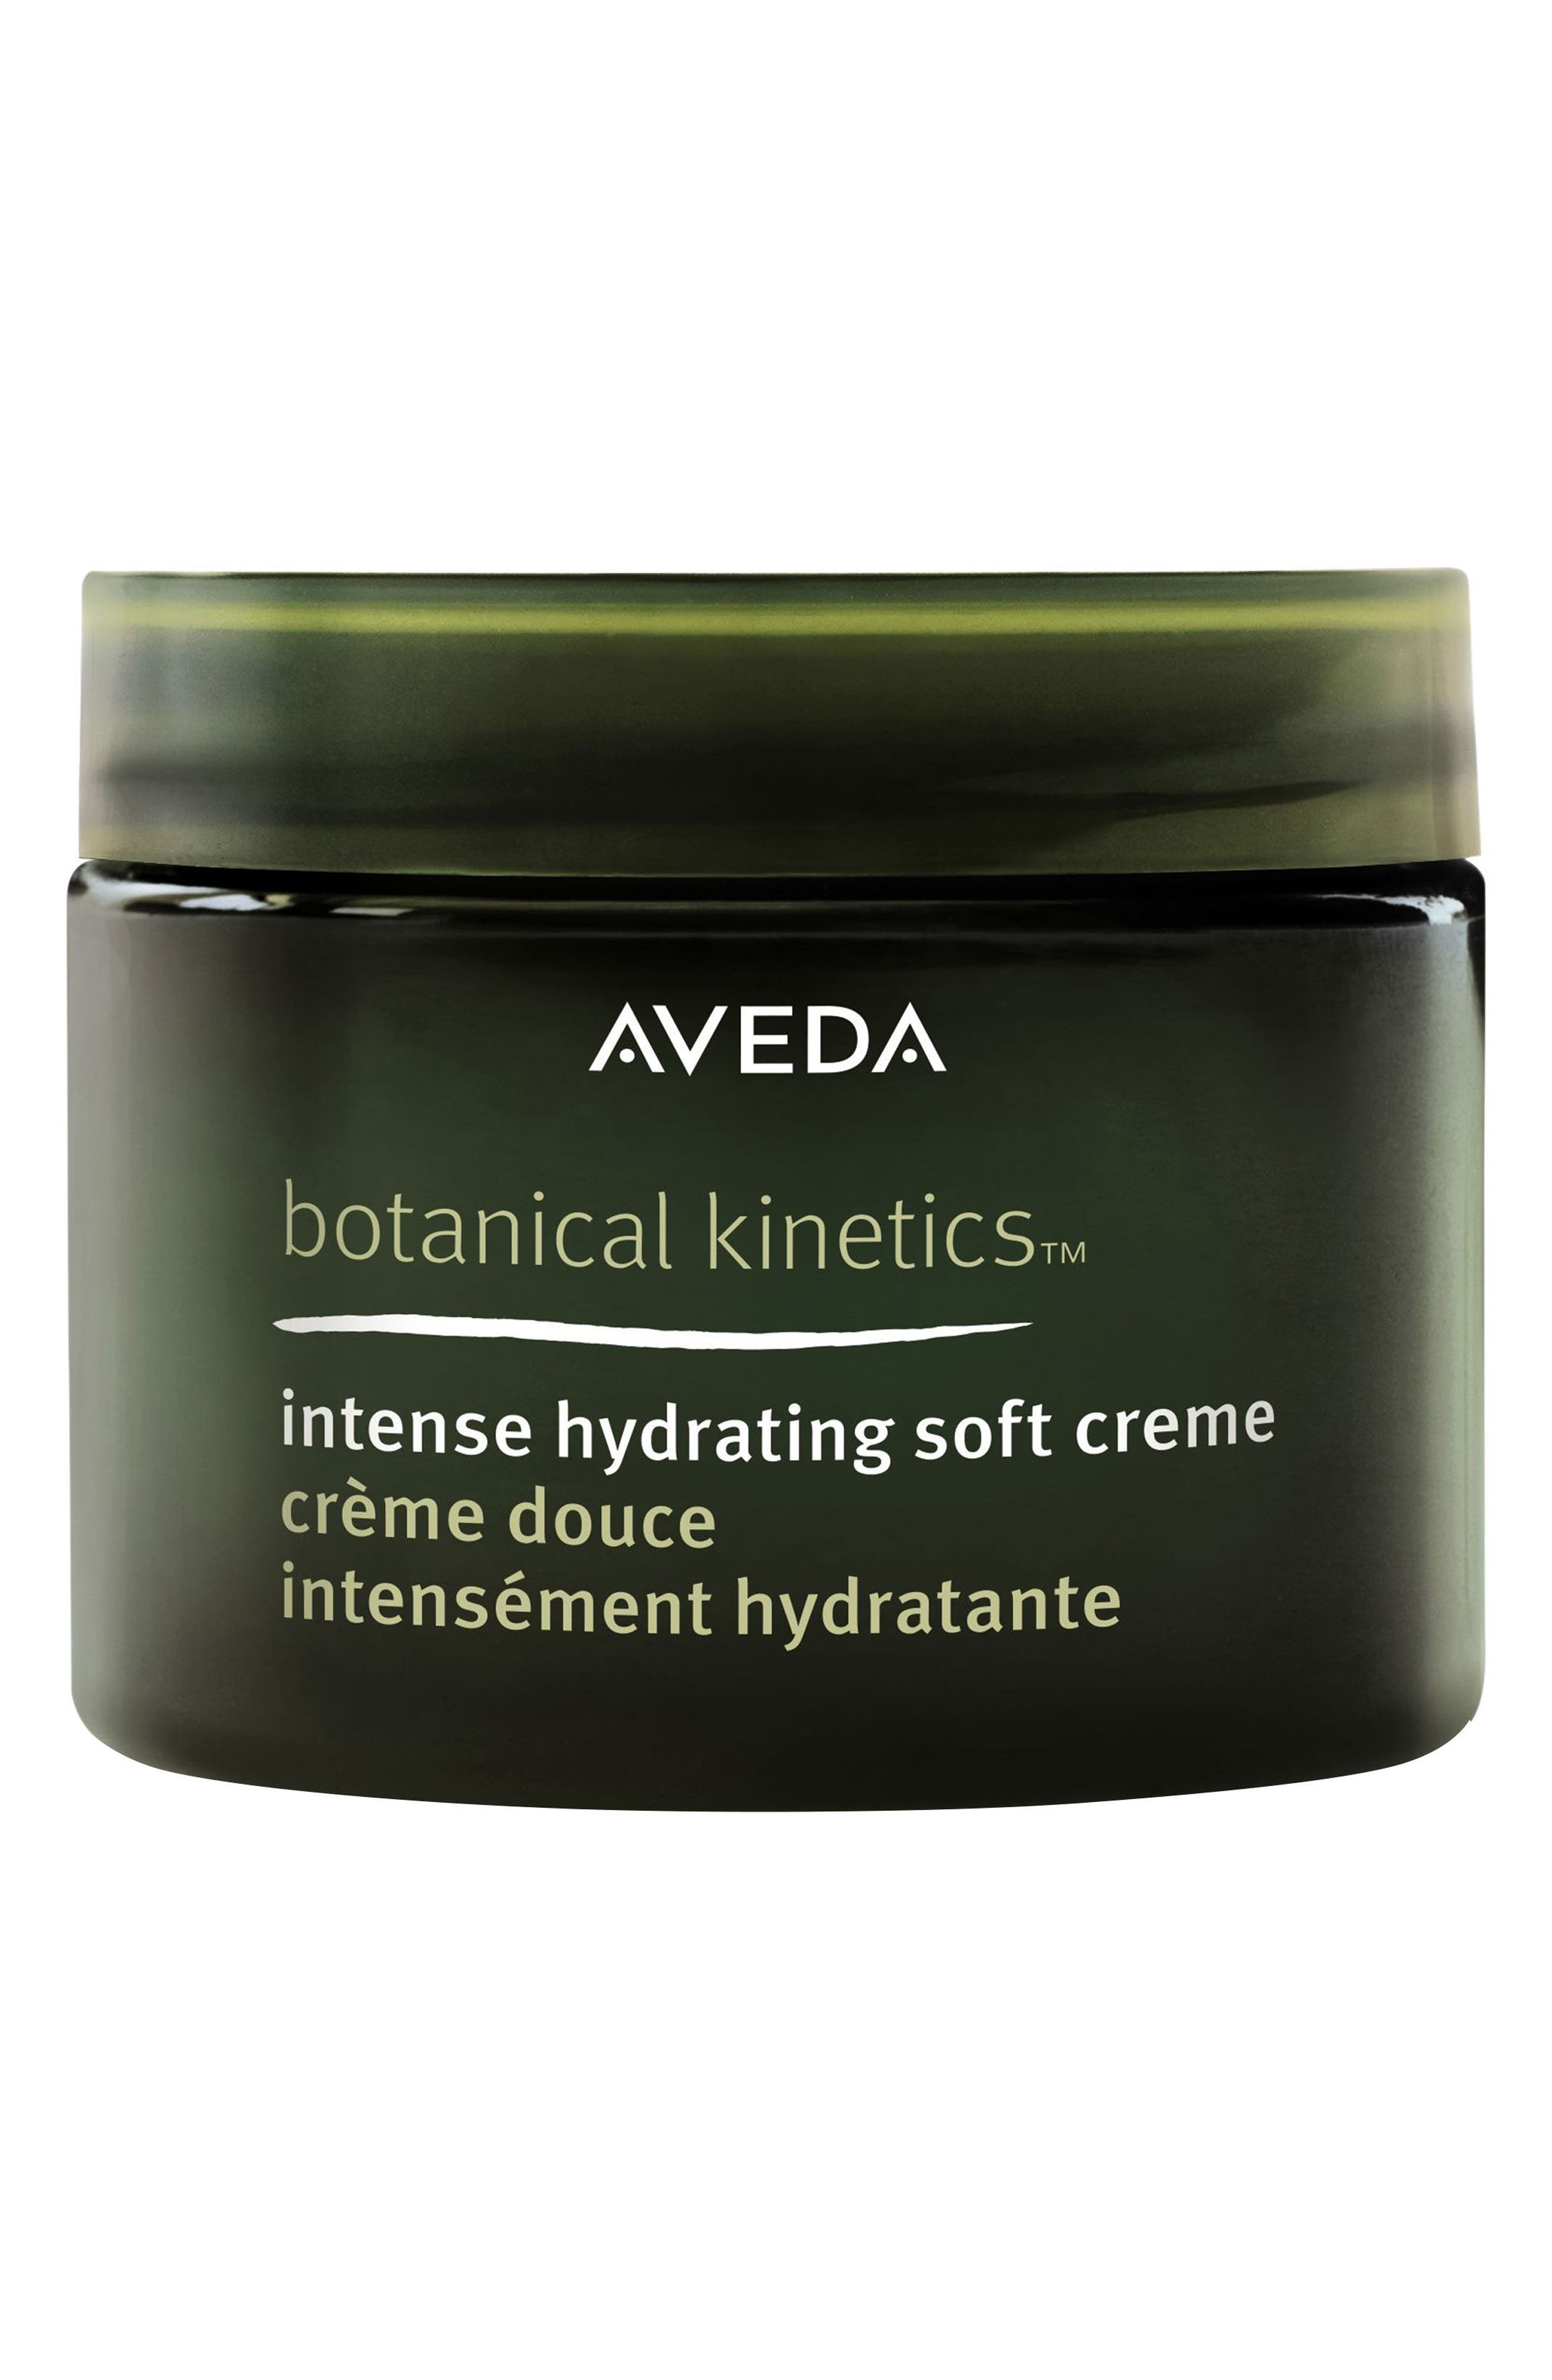 Aveda botanical kinetics™ Intense Hydrating Soft Crème